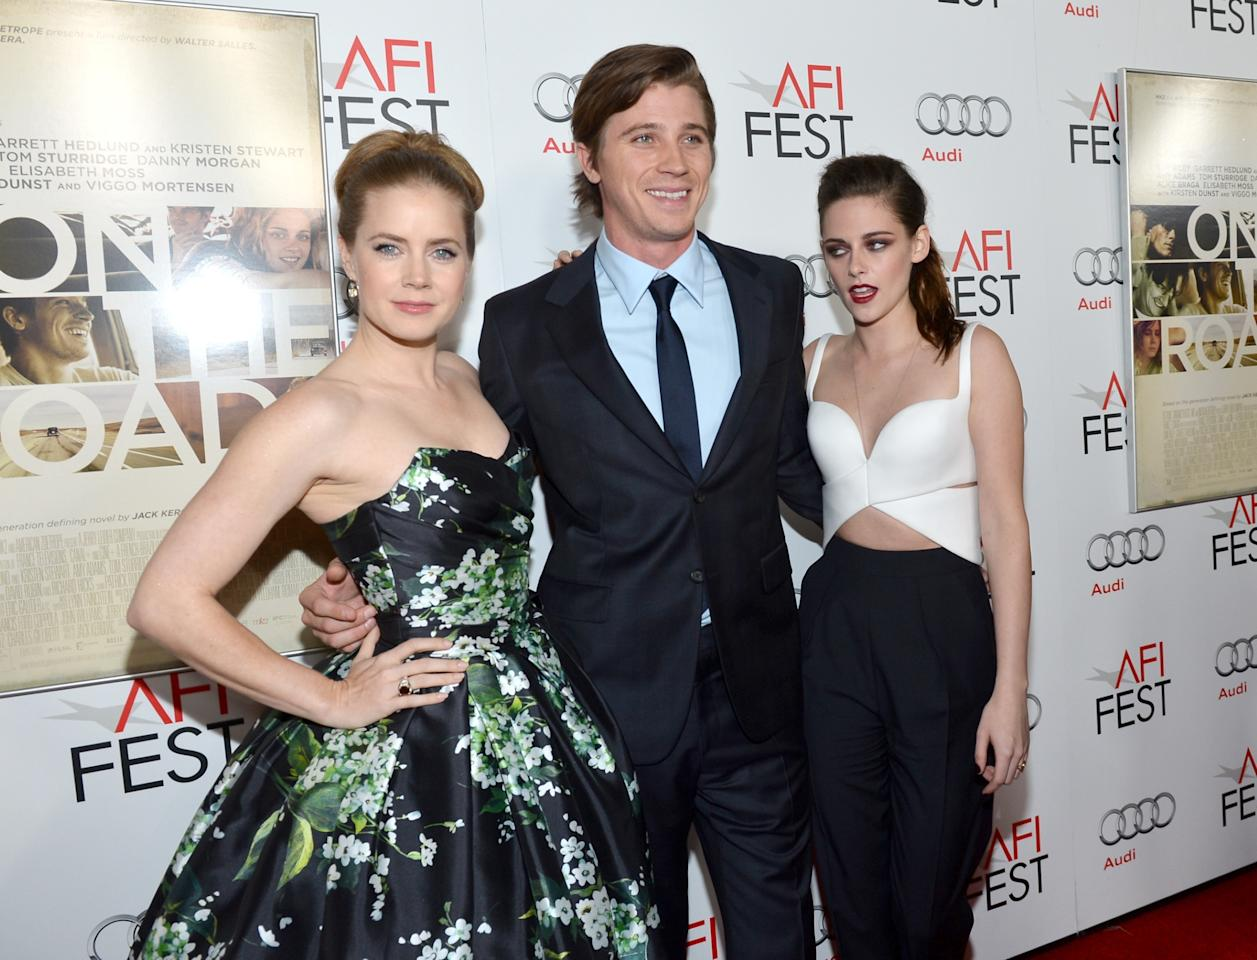 "HOLLYWOOD, CA - NOVEMBER 03:  (L-R) Actors Amy Adams, Garrett Hedlund, and Kristen Stewart arrives at the ""On The Road"" premiere during the 2012 AFI Fest presented by Audi at Grauman's Chinese Theatre on November 3, 2012 in Hollywood, California.  (Photo by Alberto E. Rodriguez/Getty Images for AFI)"